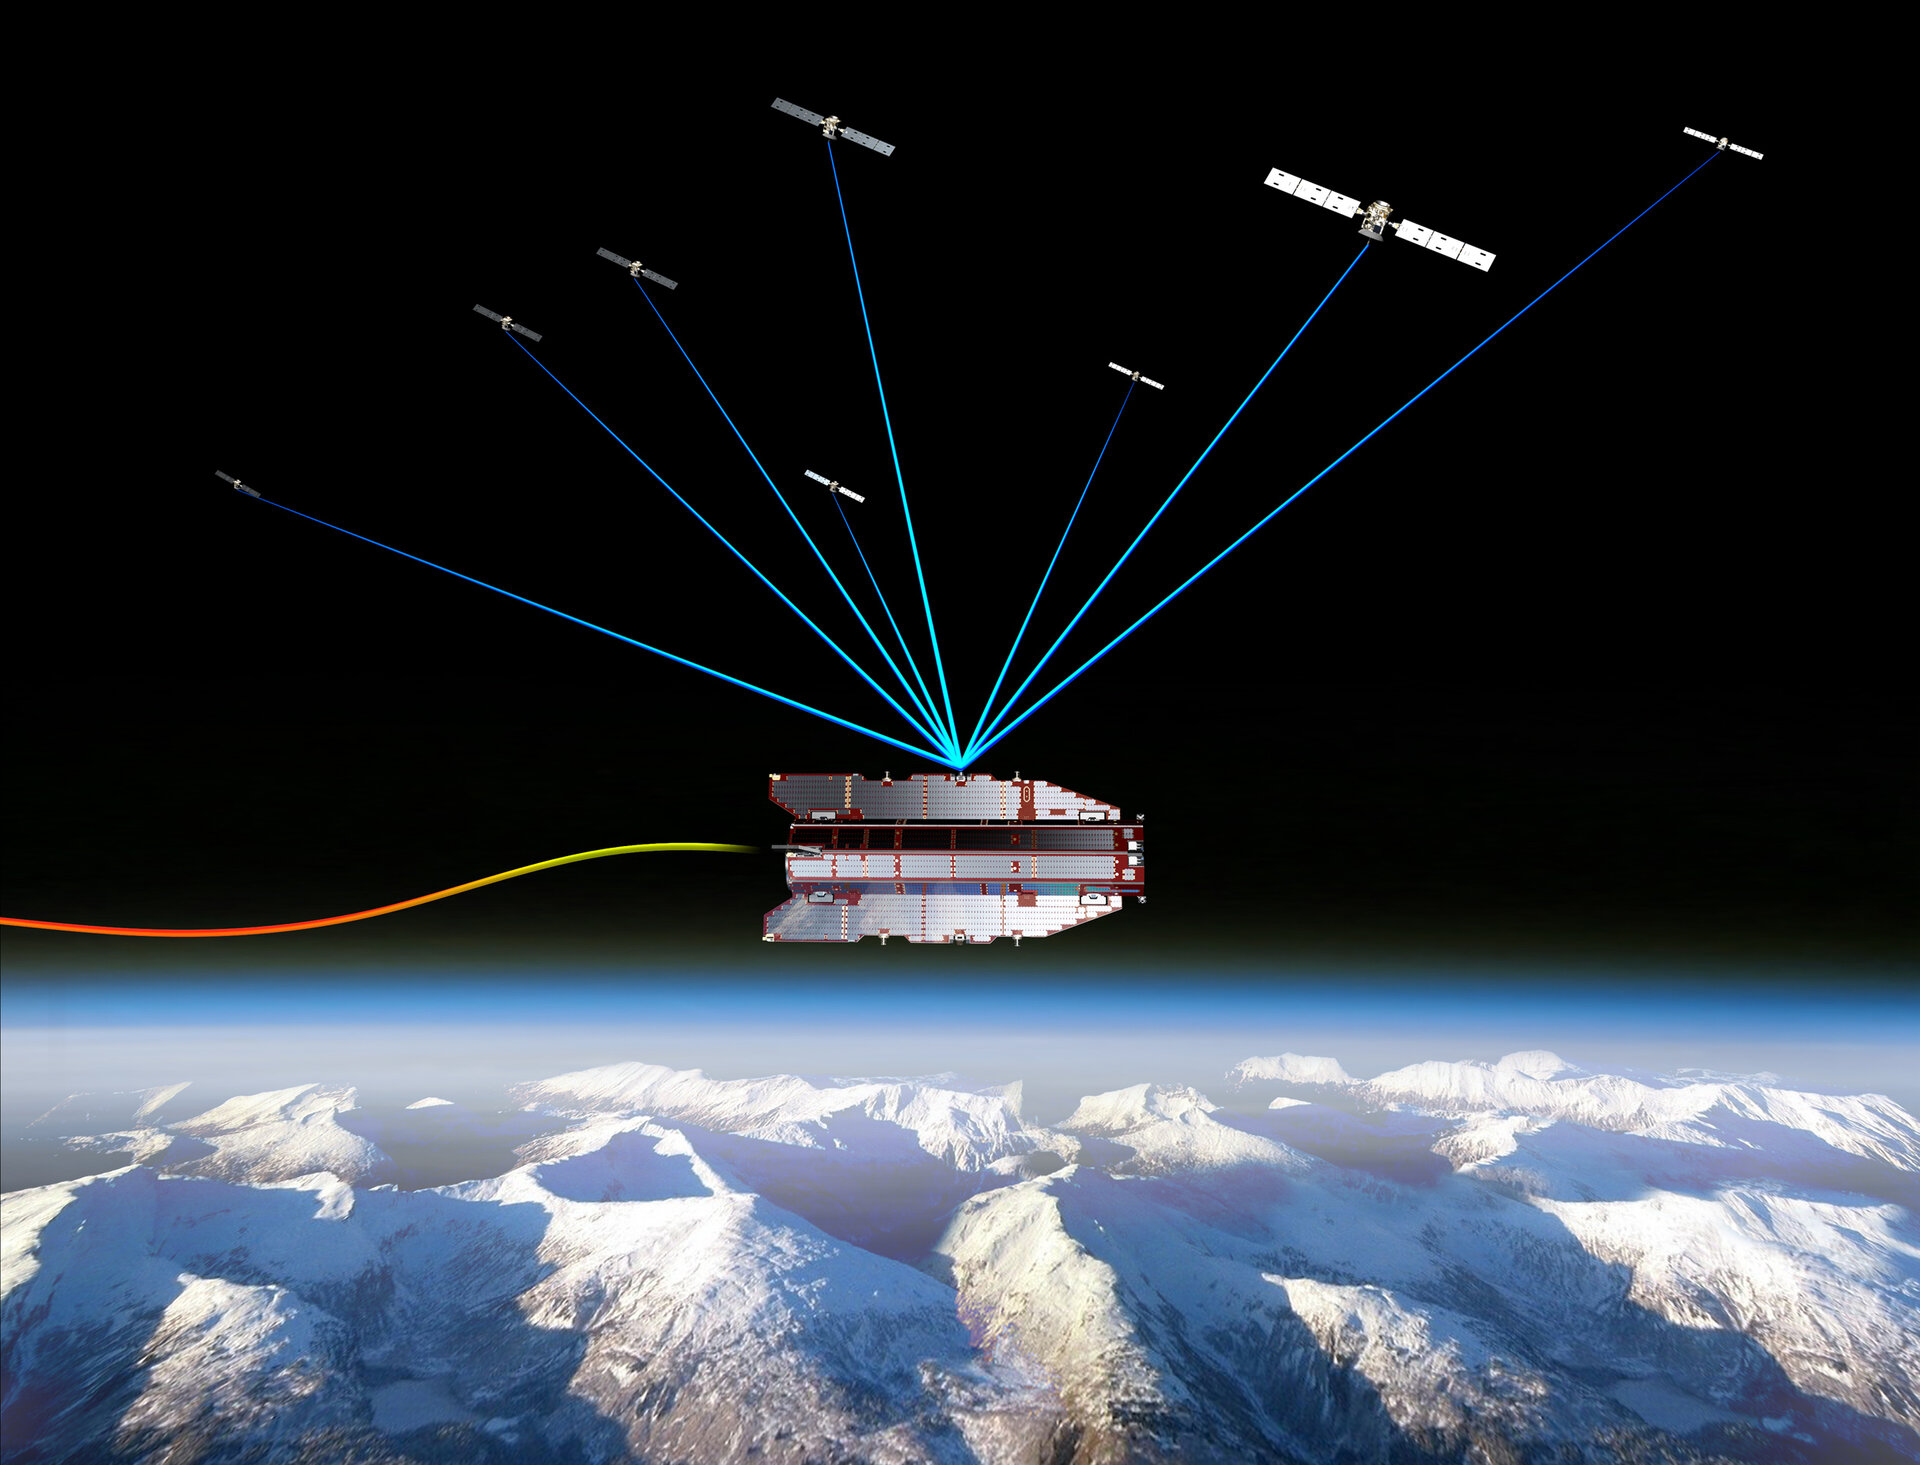 GOCE tracked by GPS satellites